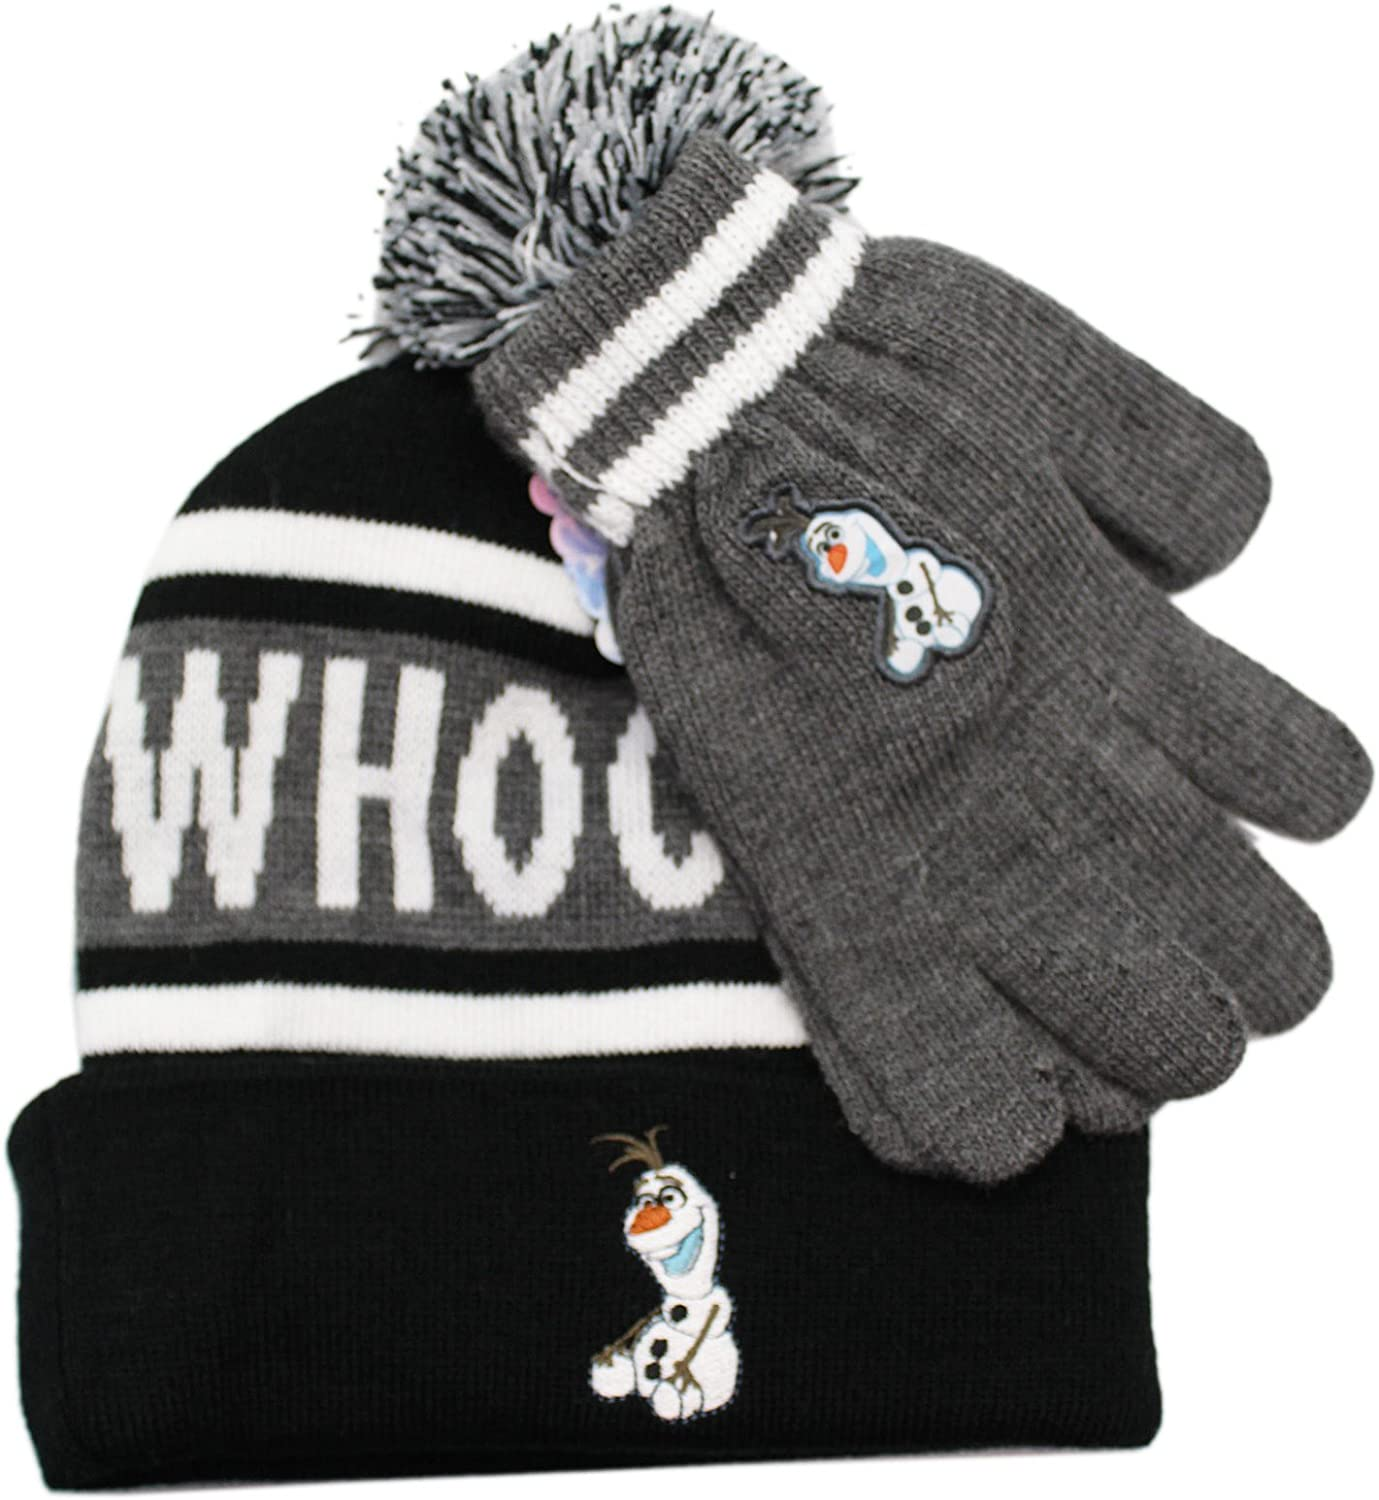 Disney's Frozen Olaf Popular Popular brand in the world products Whoo Headrush Hatset and Beanie Gloves